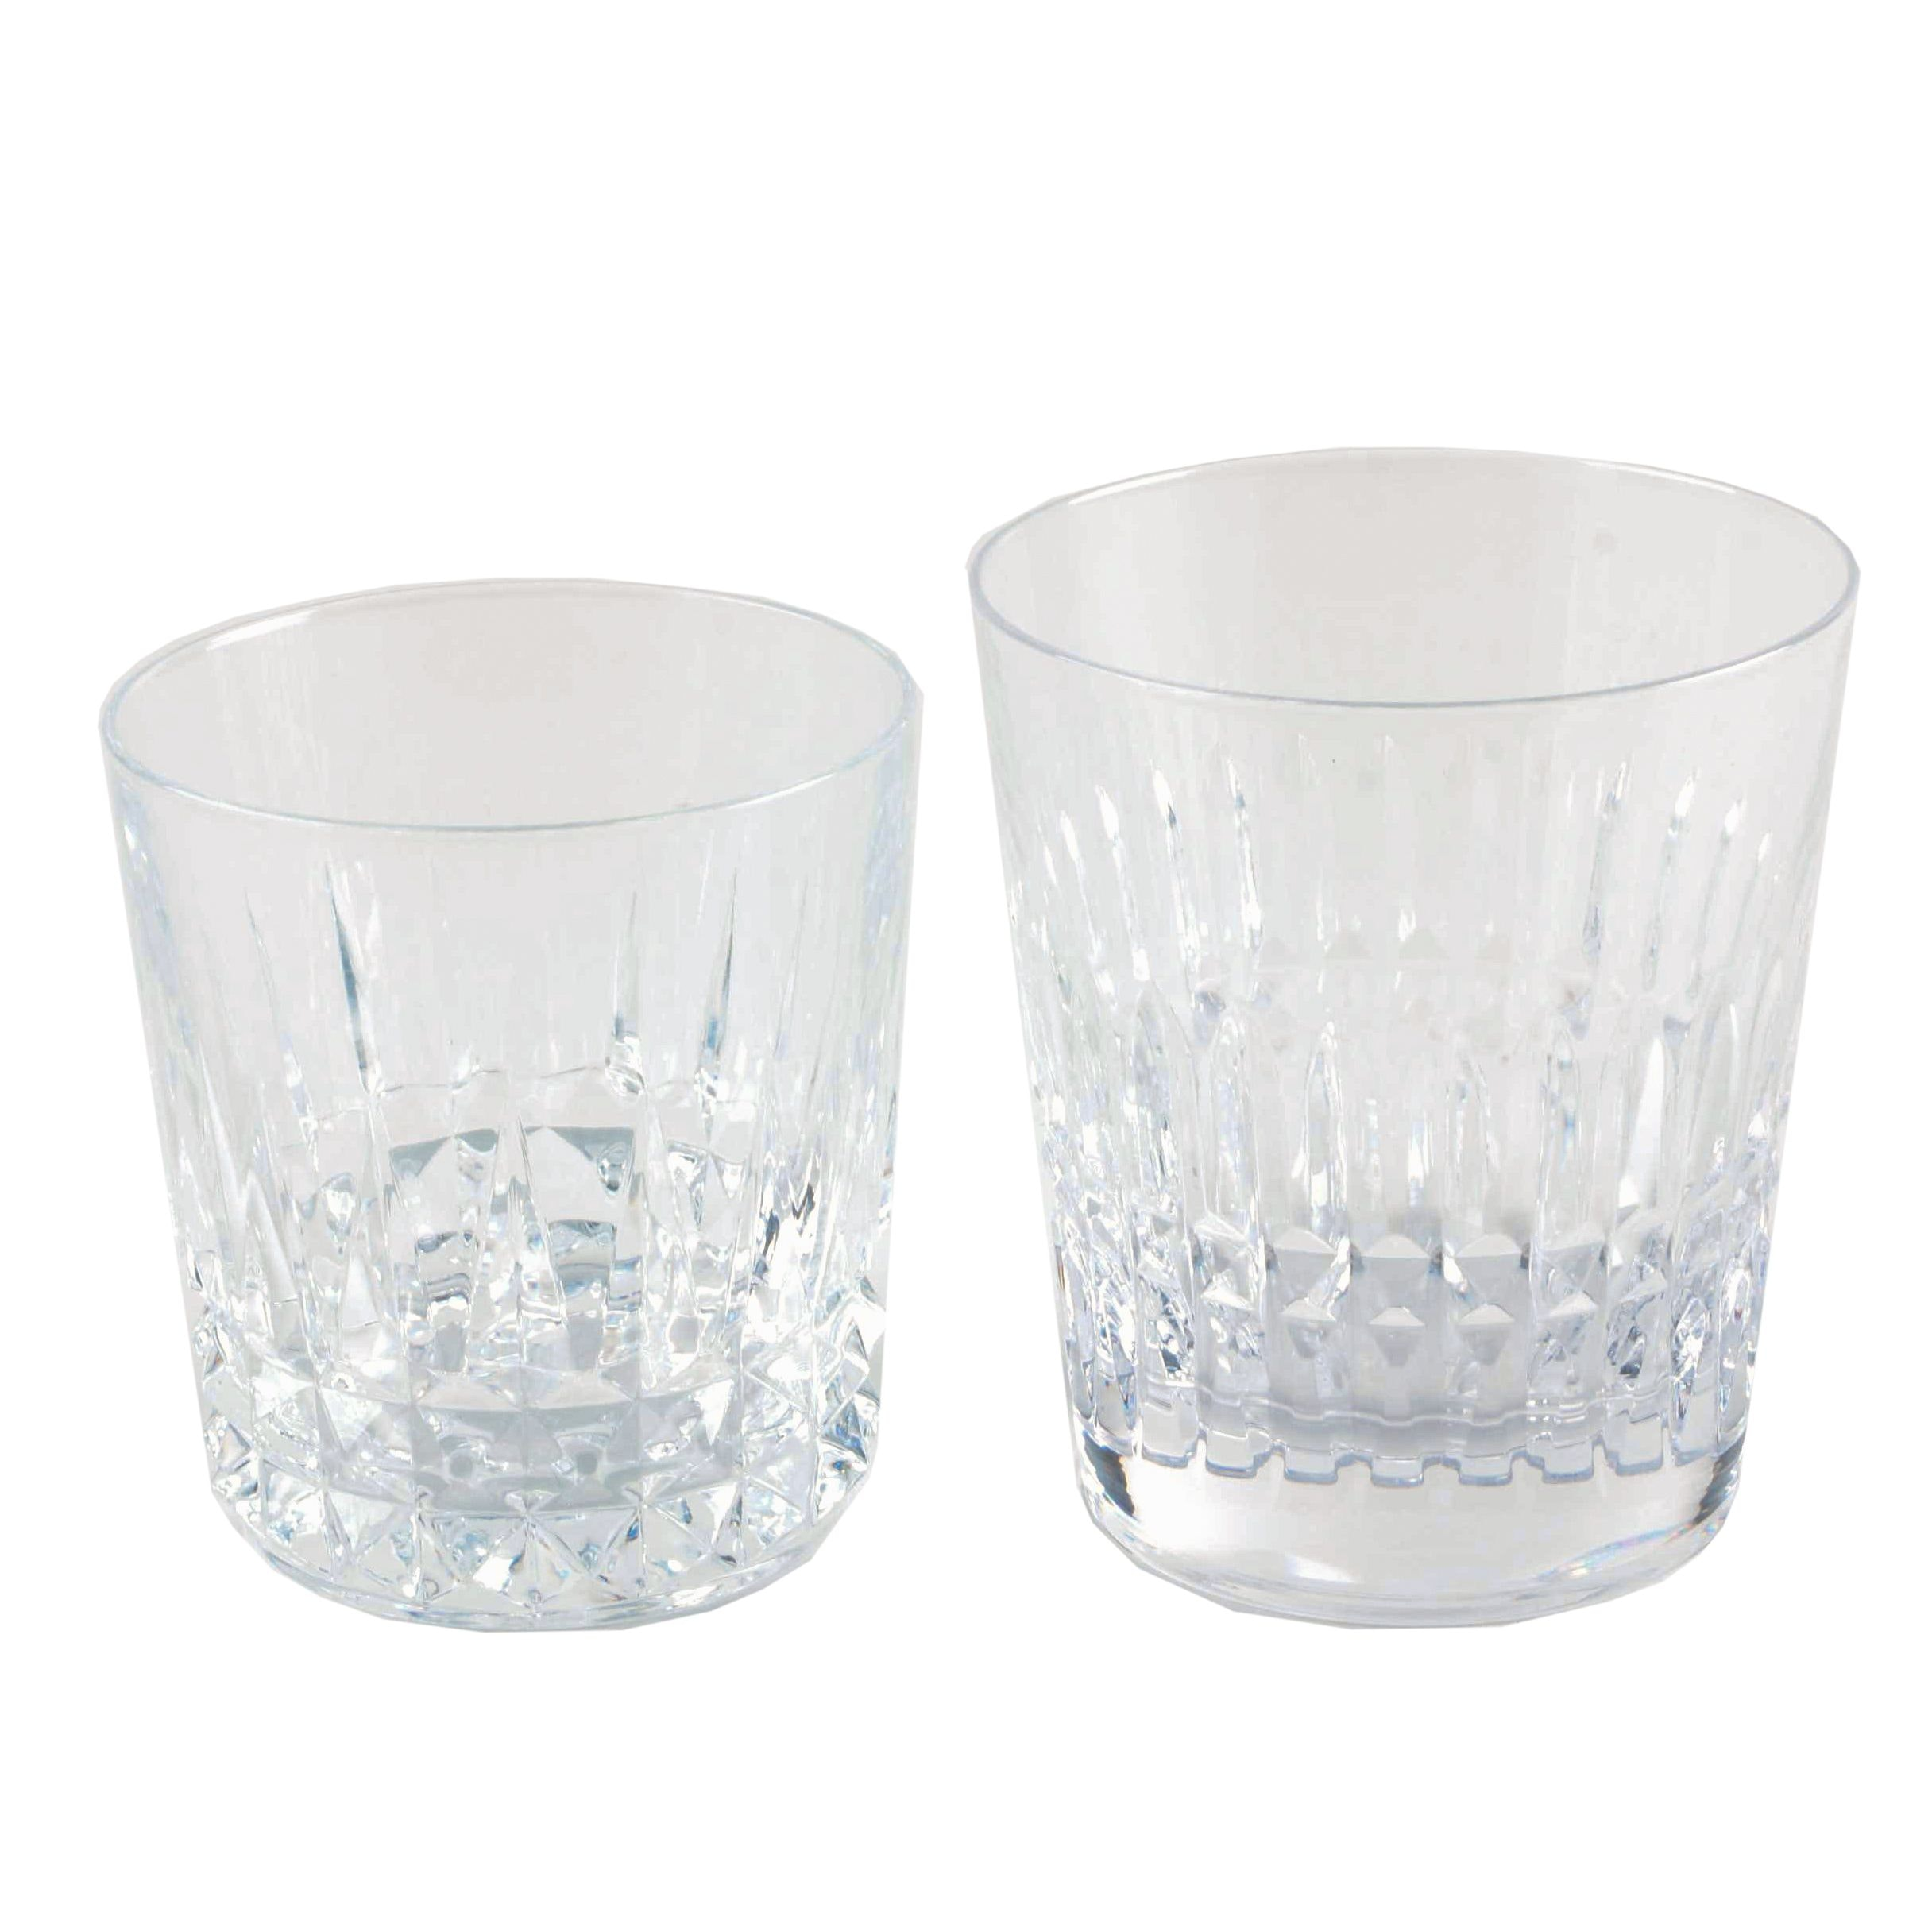 Crystal Rock Glasses Featuring Bayel Cristal